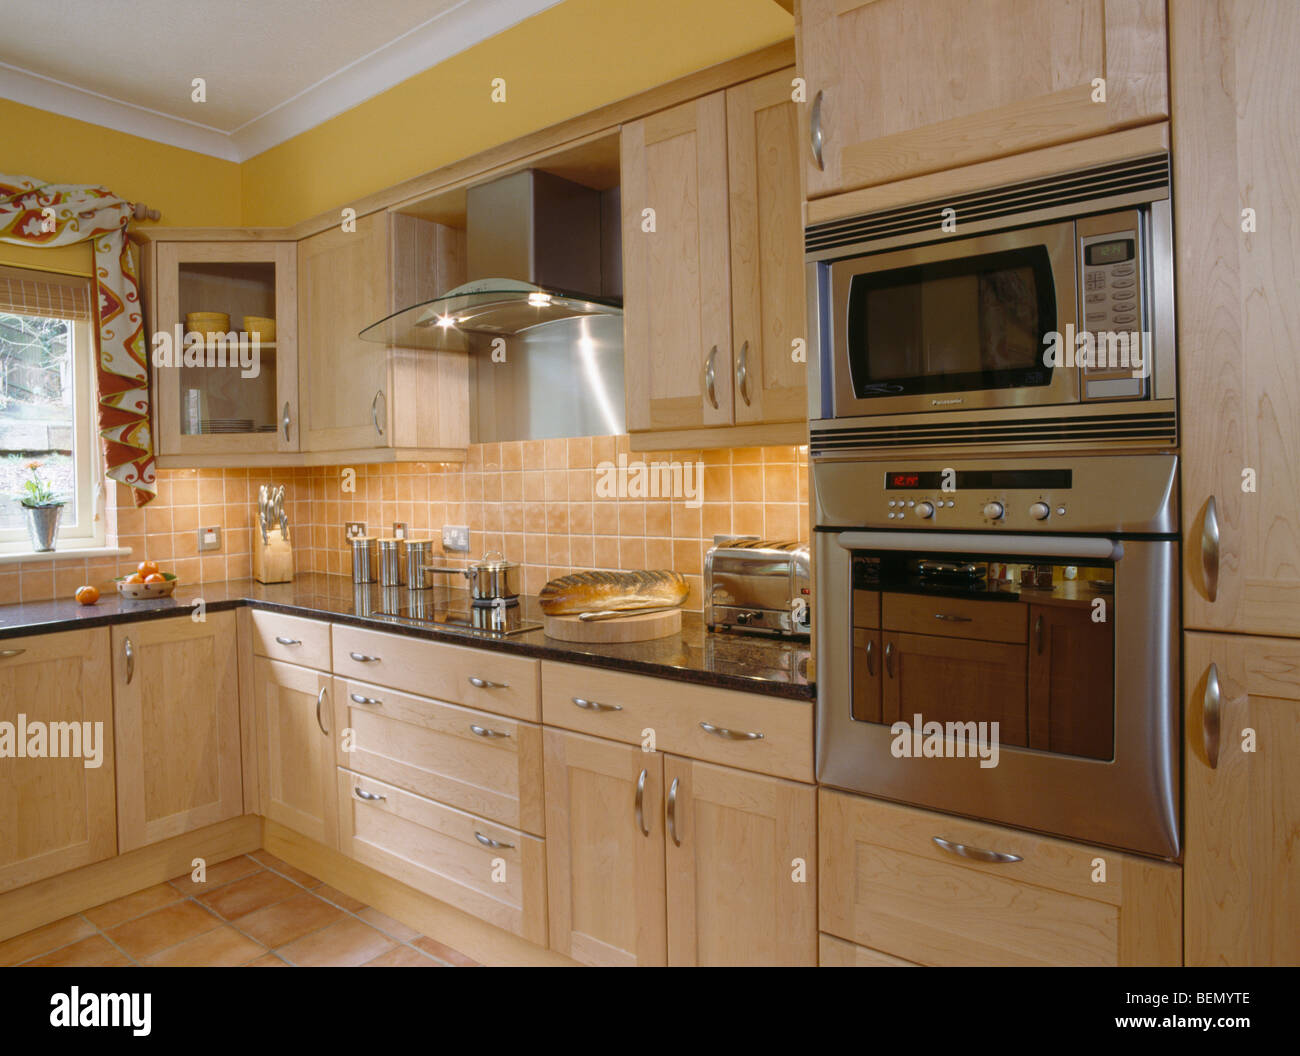 Eye level oven and microwave in modern yellow kitchen with for Eye level oven kitchen designs